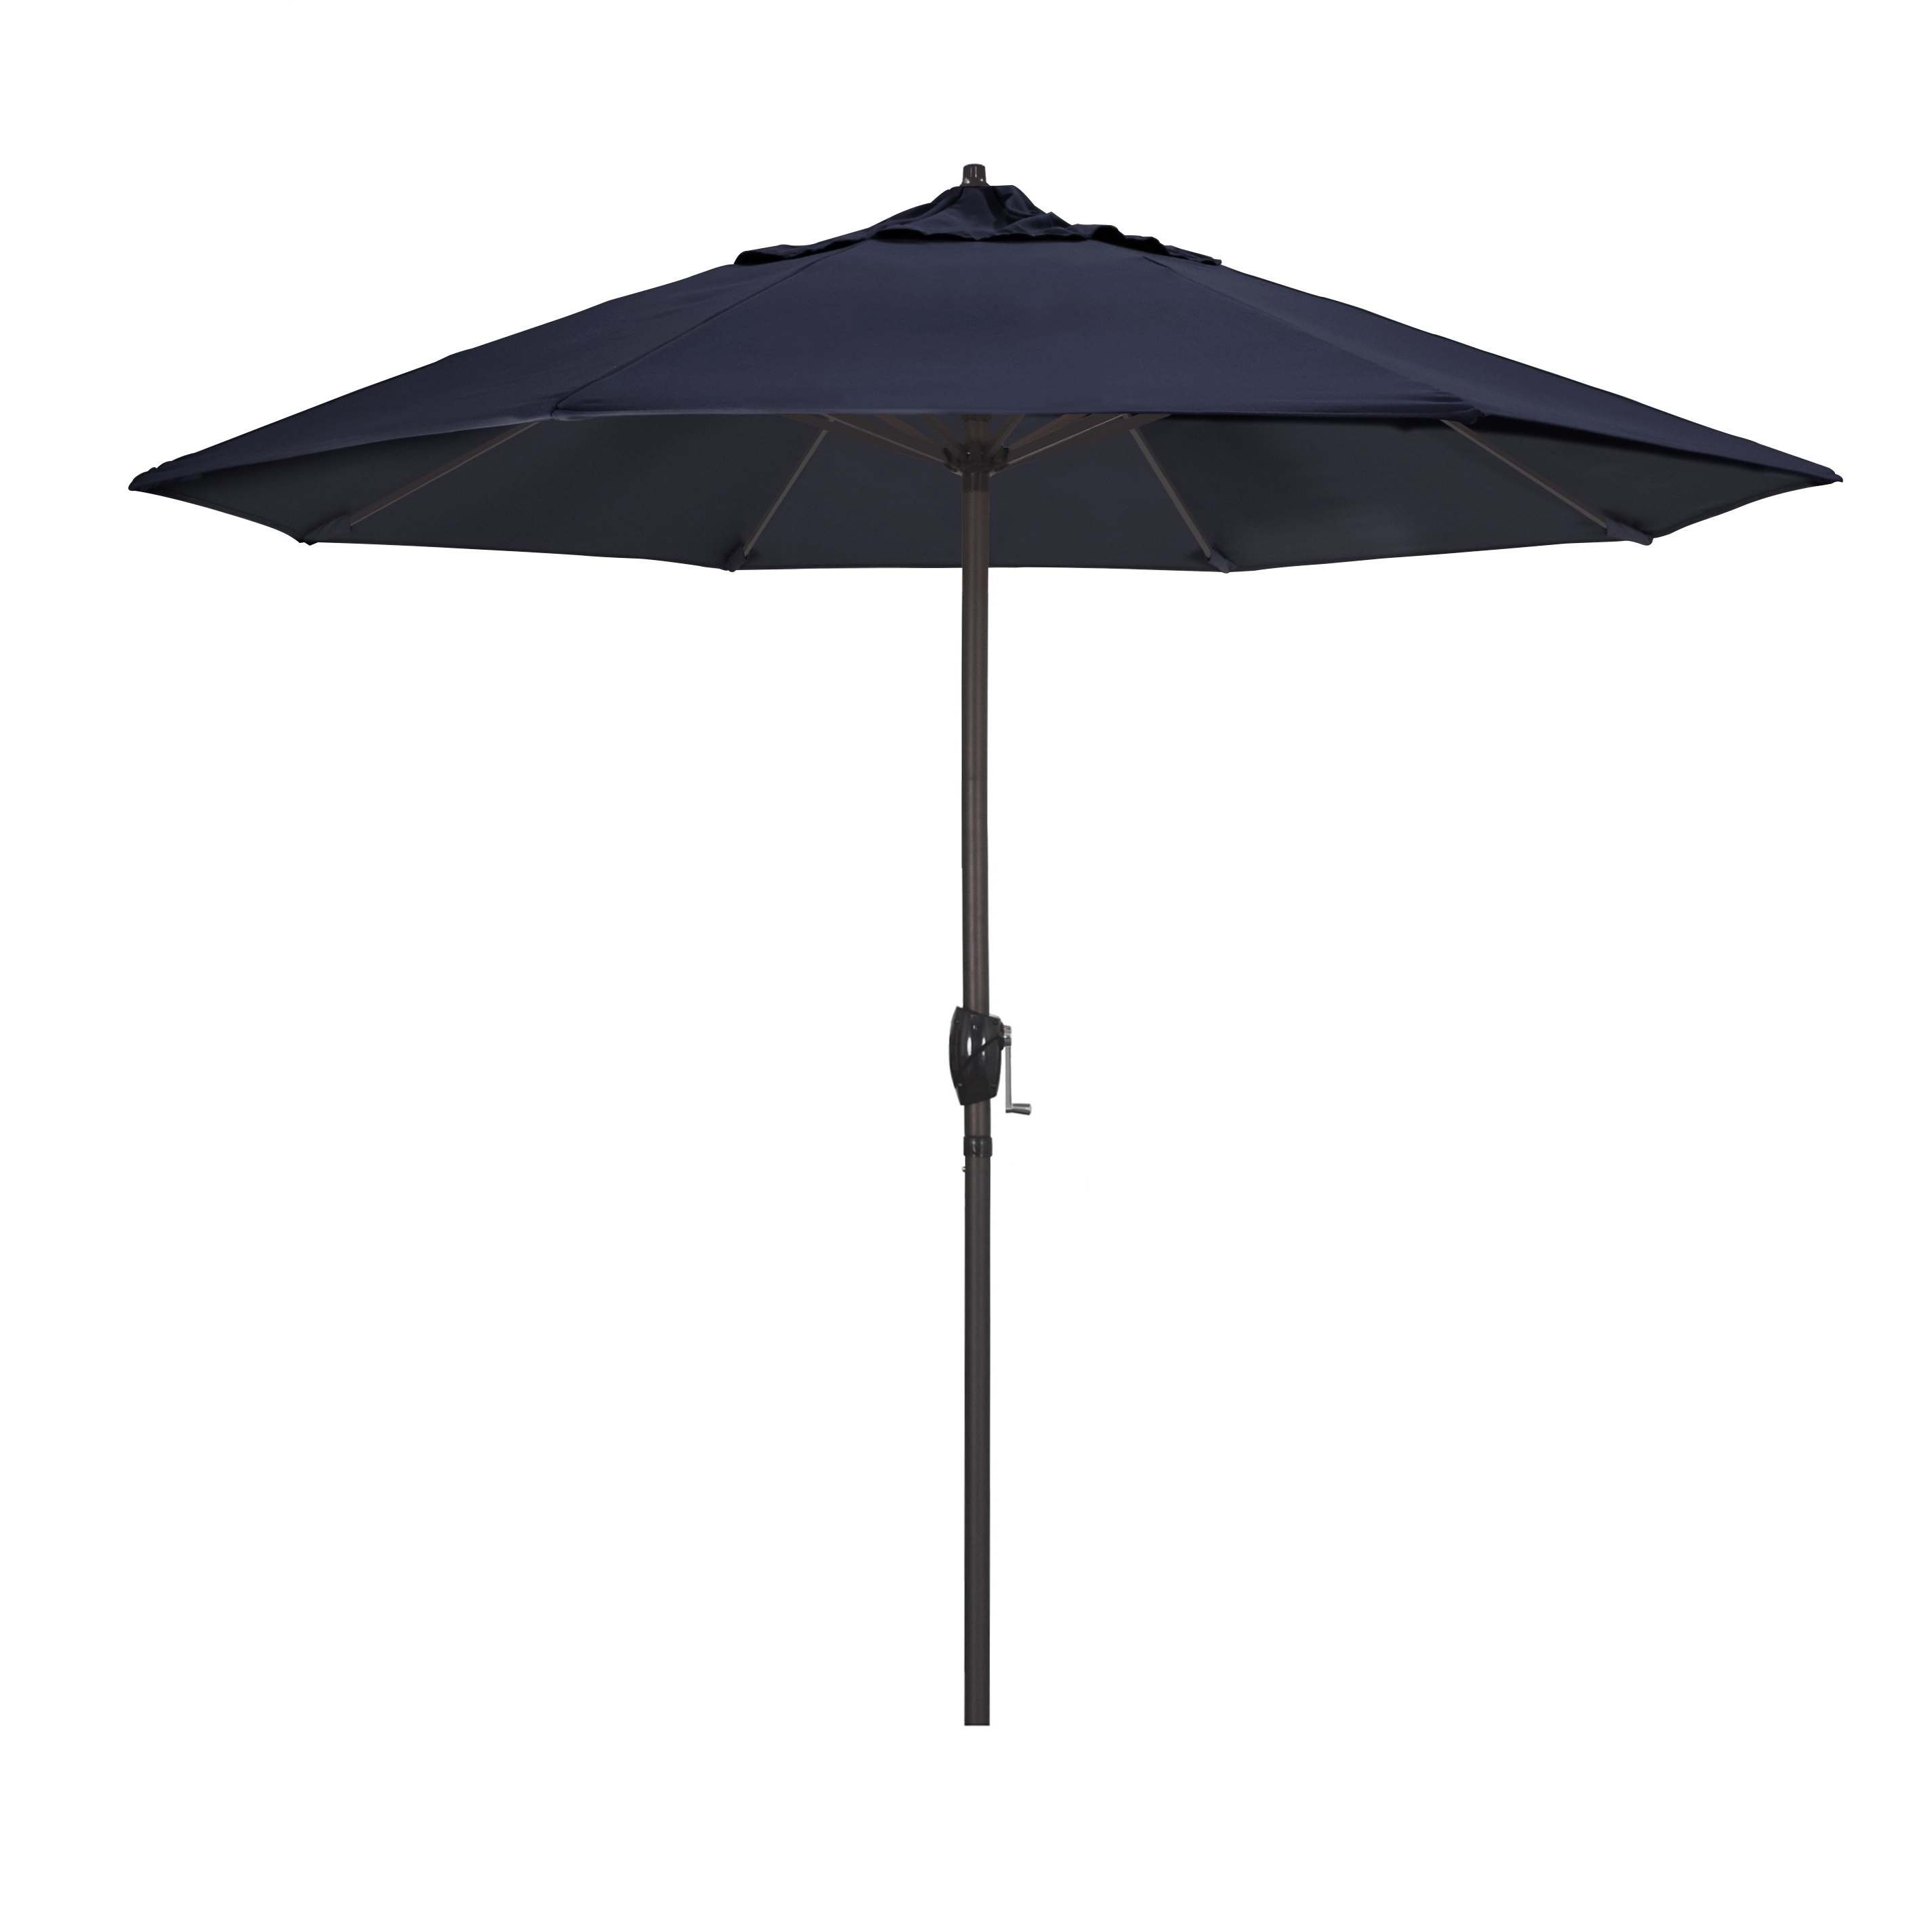 Wayfair With Regard To Striped Sunbrella Patio Umbrellas (View 14 of 20)